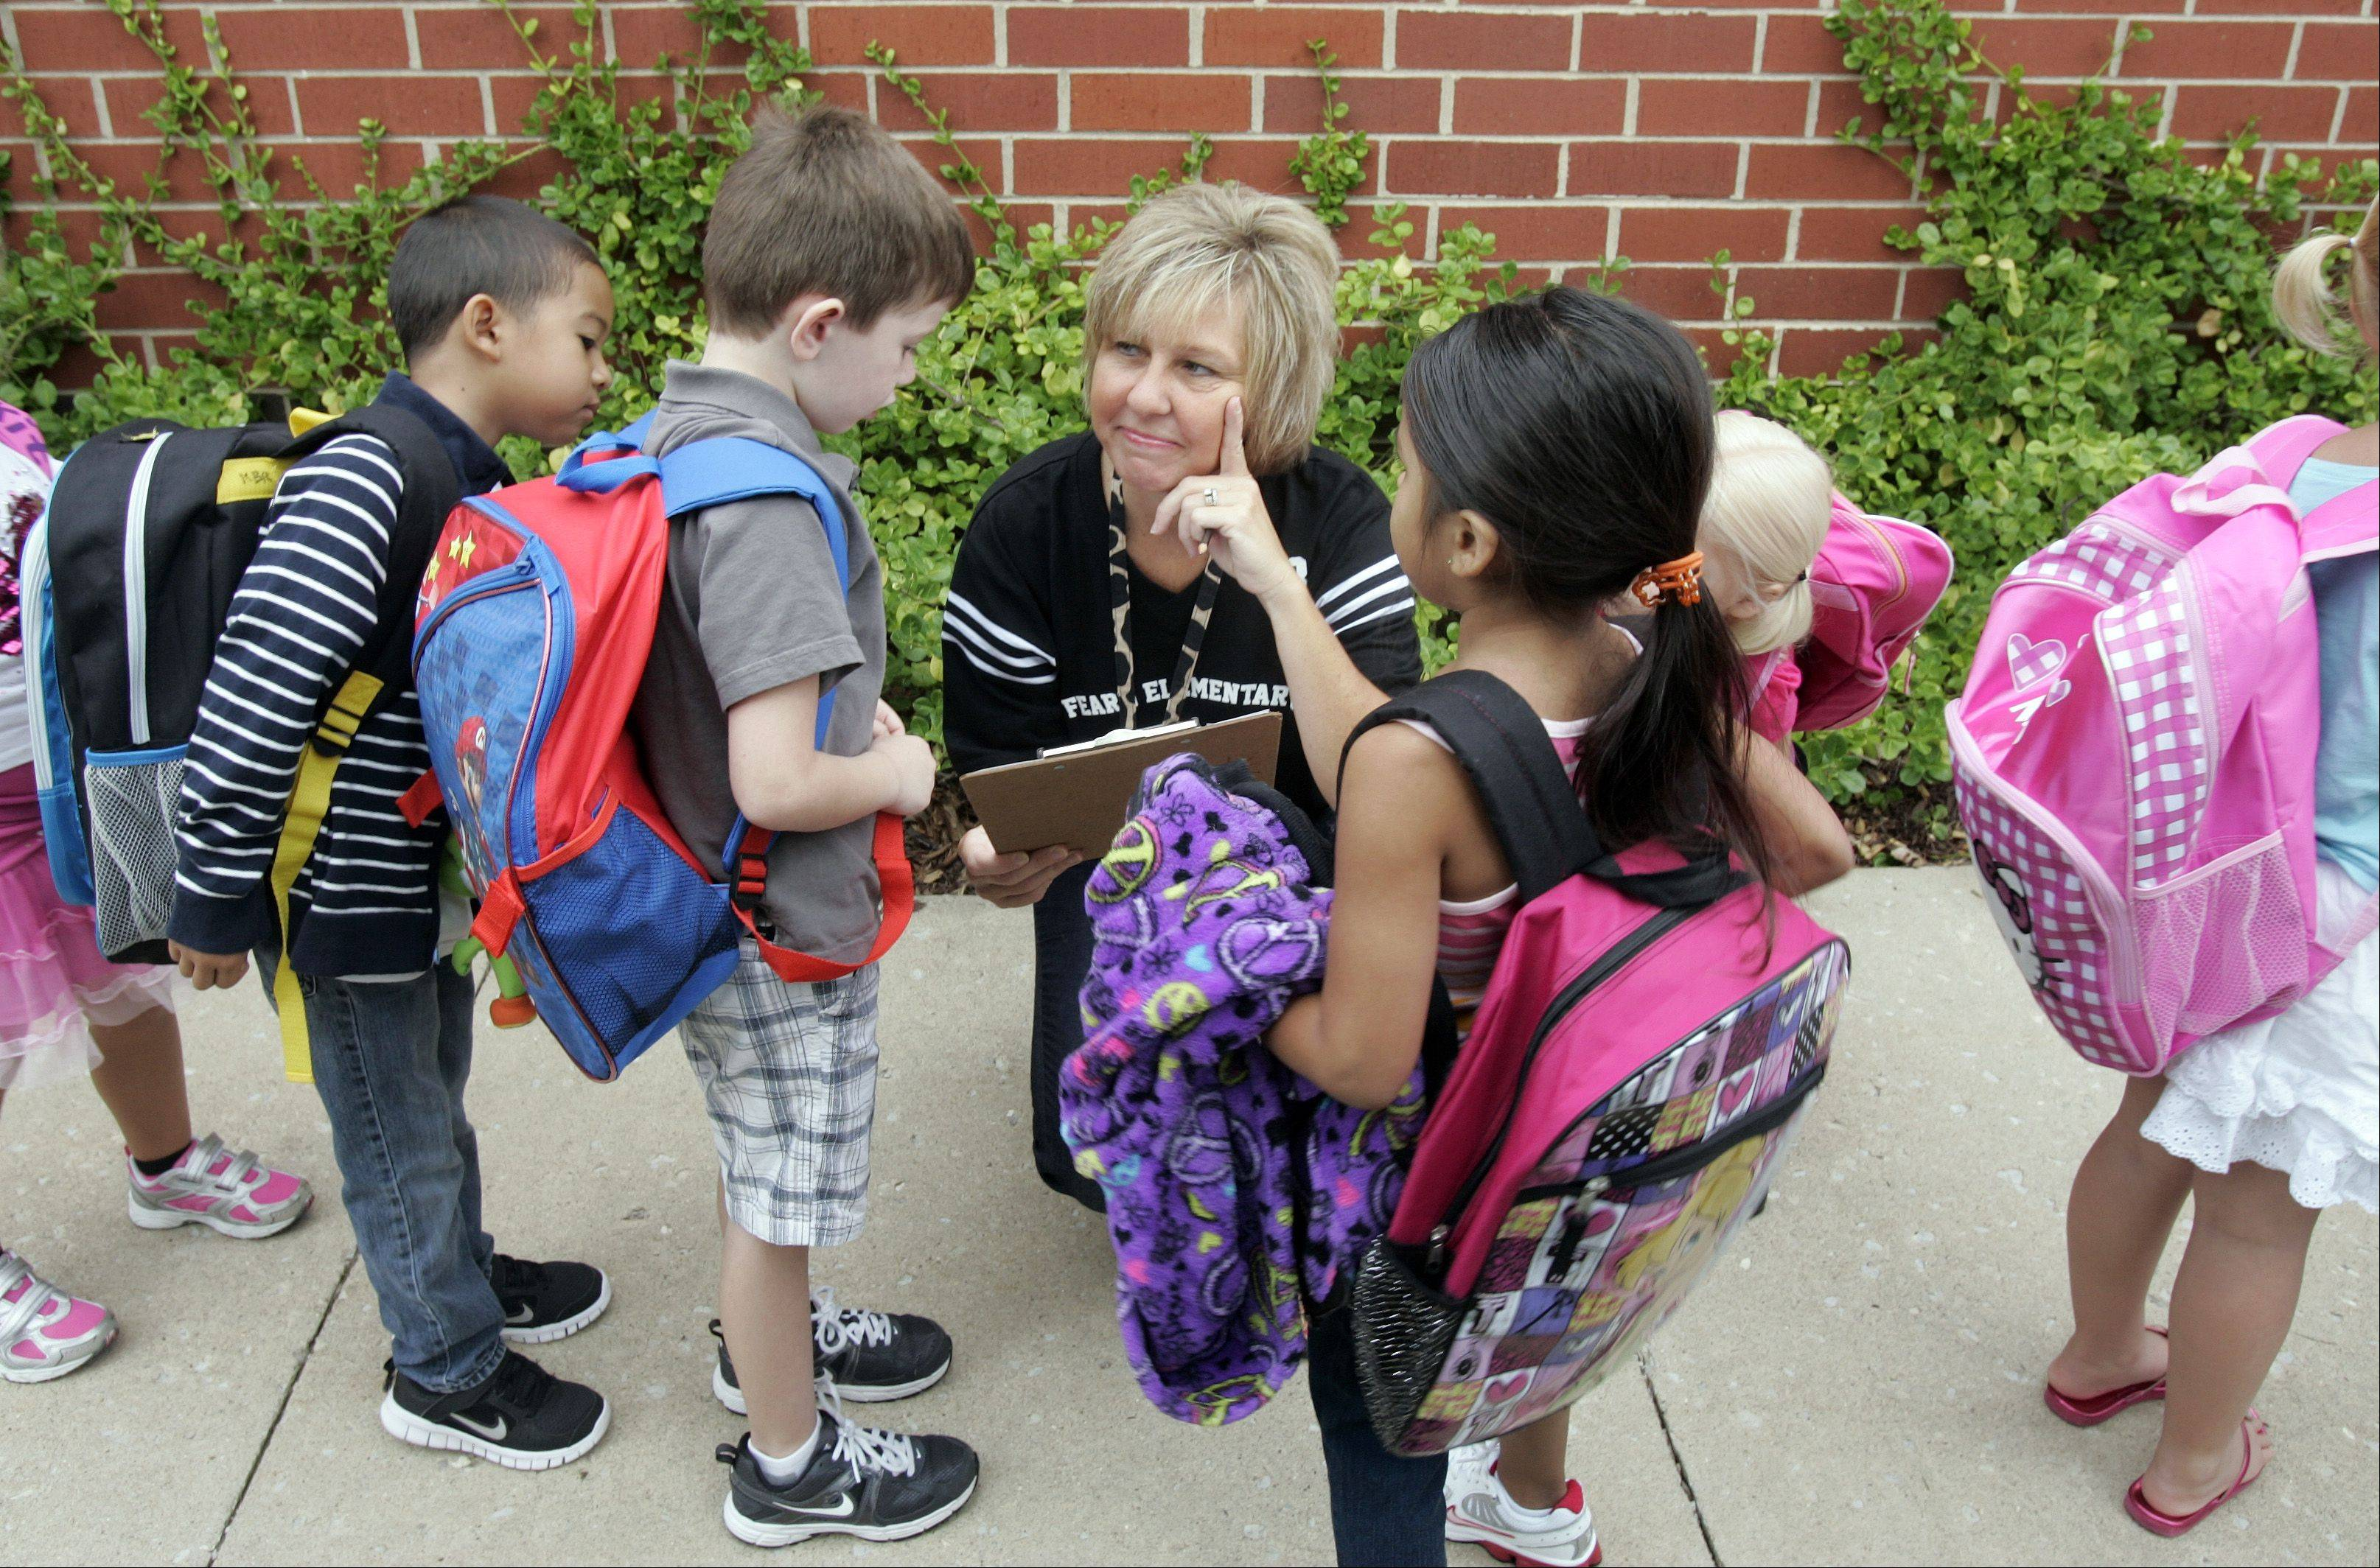 Kindergarten teacher Tricia Brummel greets her students at Fearn Elementary School in North Aurora Wednesday.